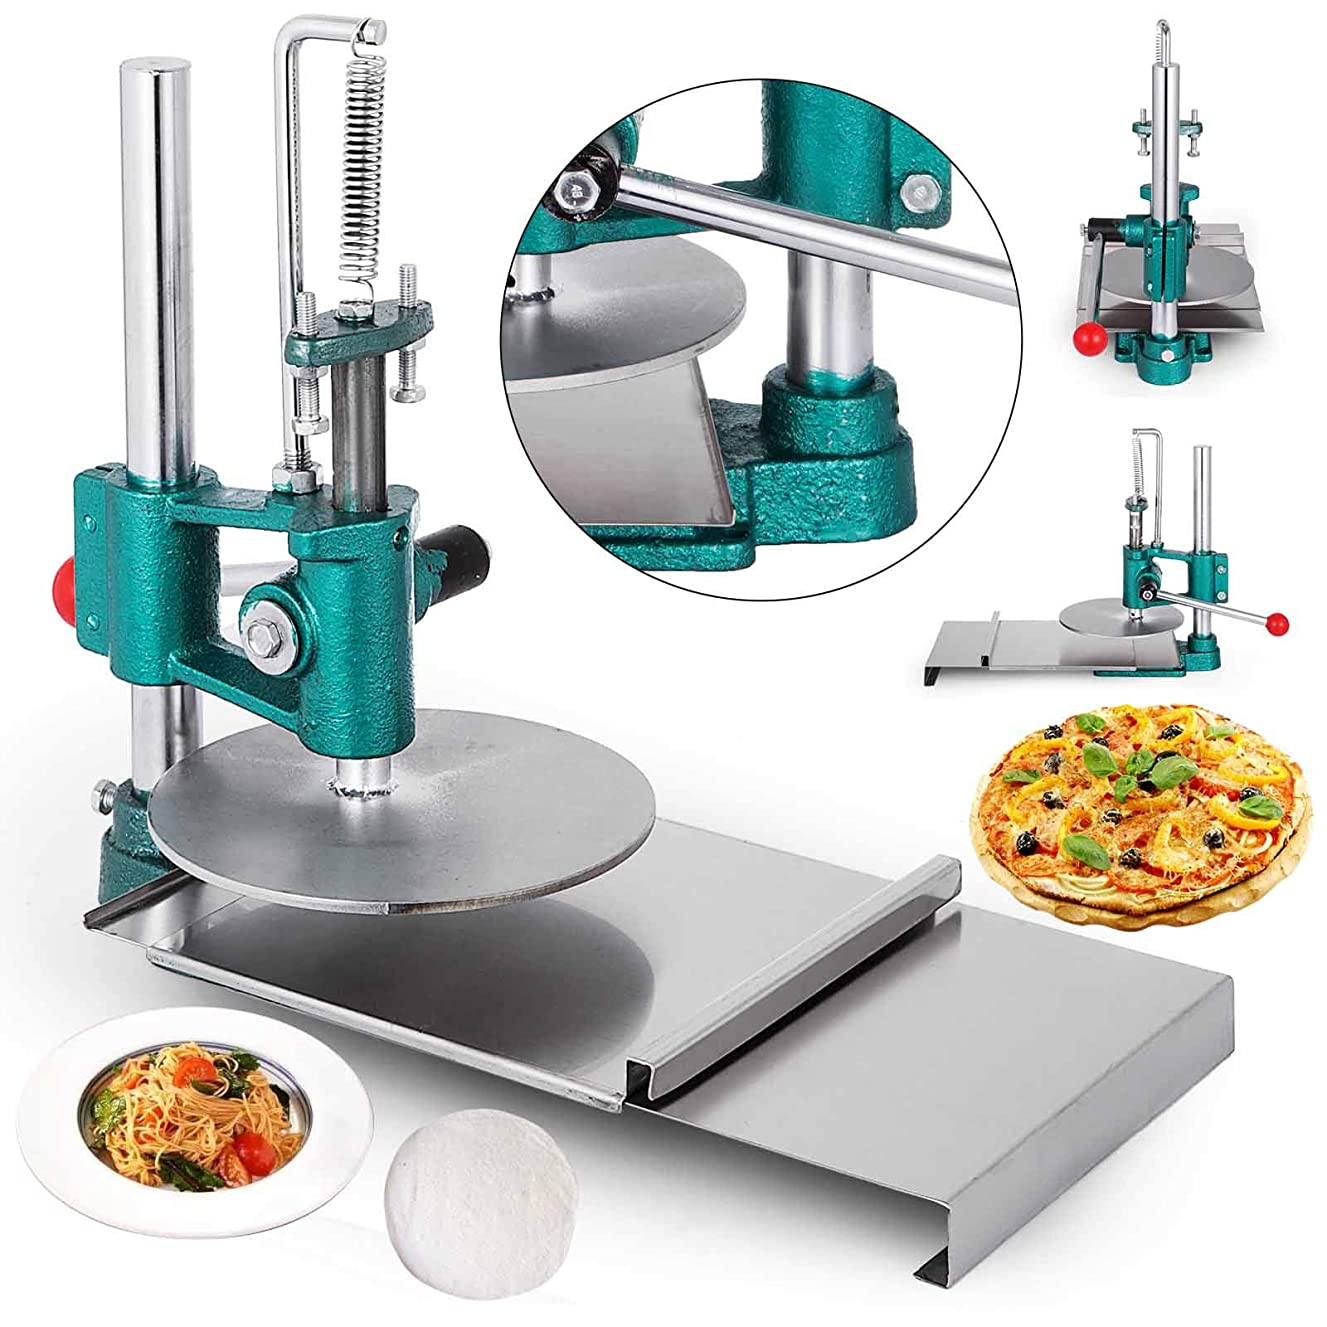 VEVOR Pizza Pastry Press Machine Stainless Steel Household Pizza Dough Pastry Manual Press Machine Metal Plate Diameter (7.87inches)